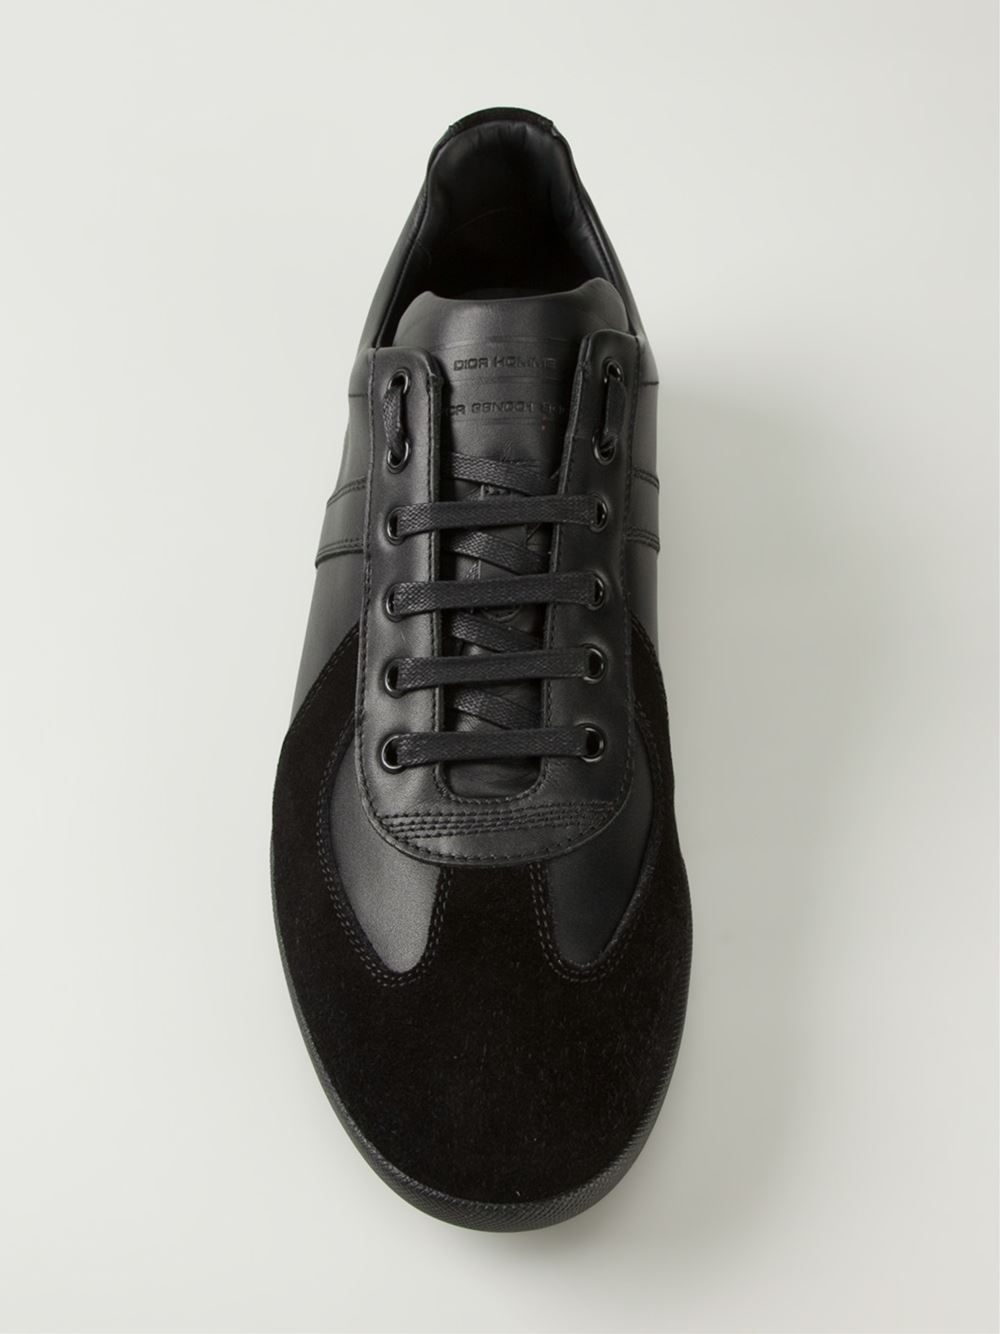 9ababa98b53 Dior Homme Sneakers